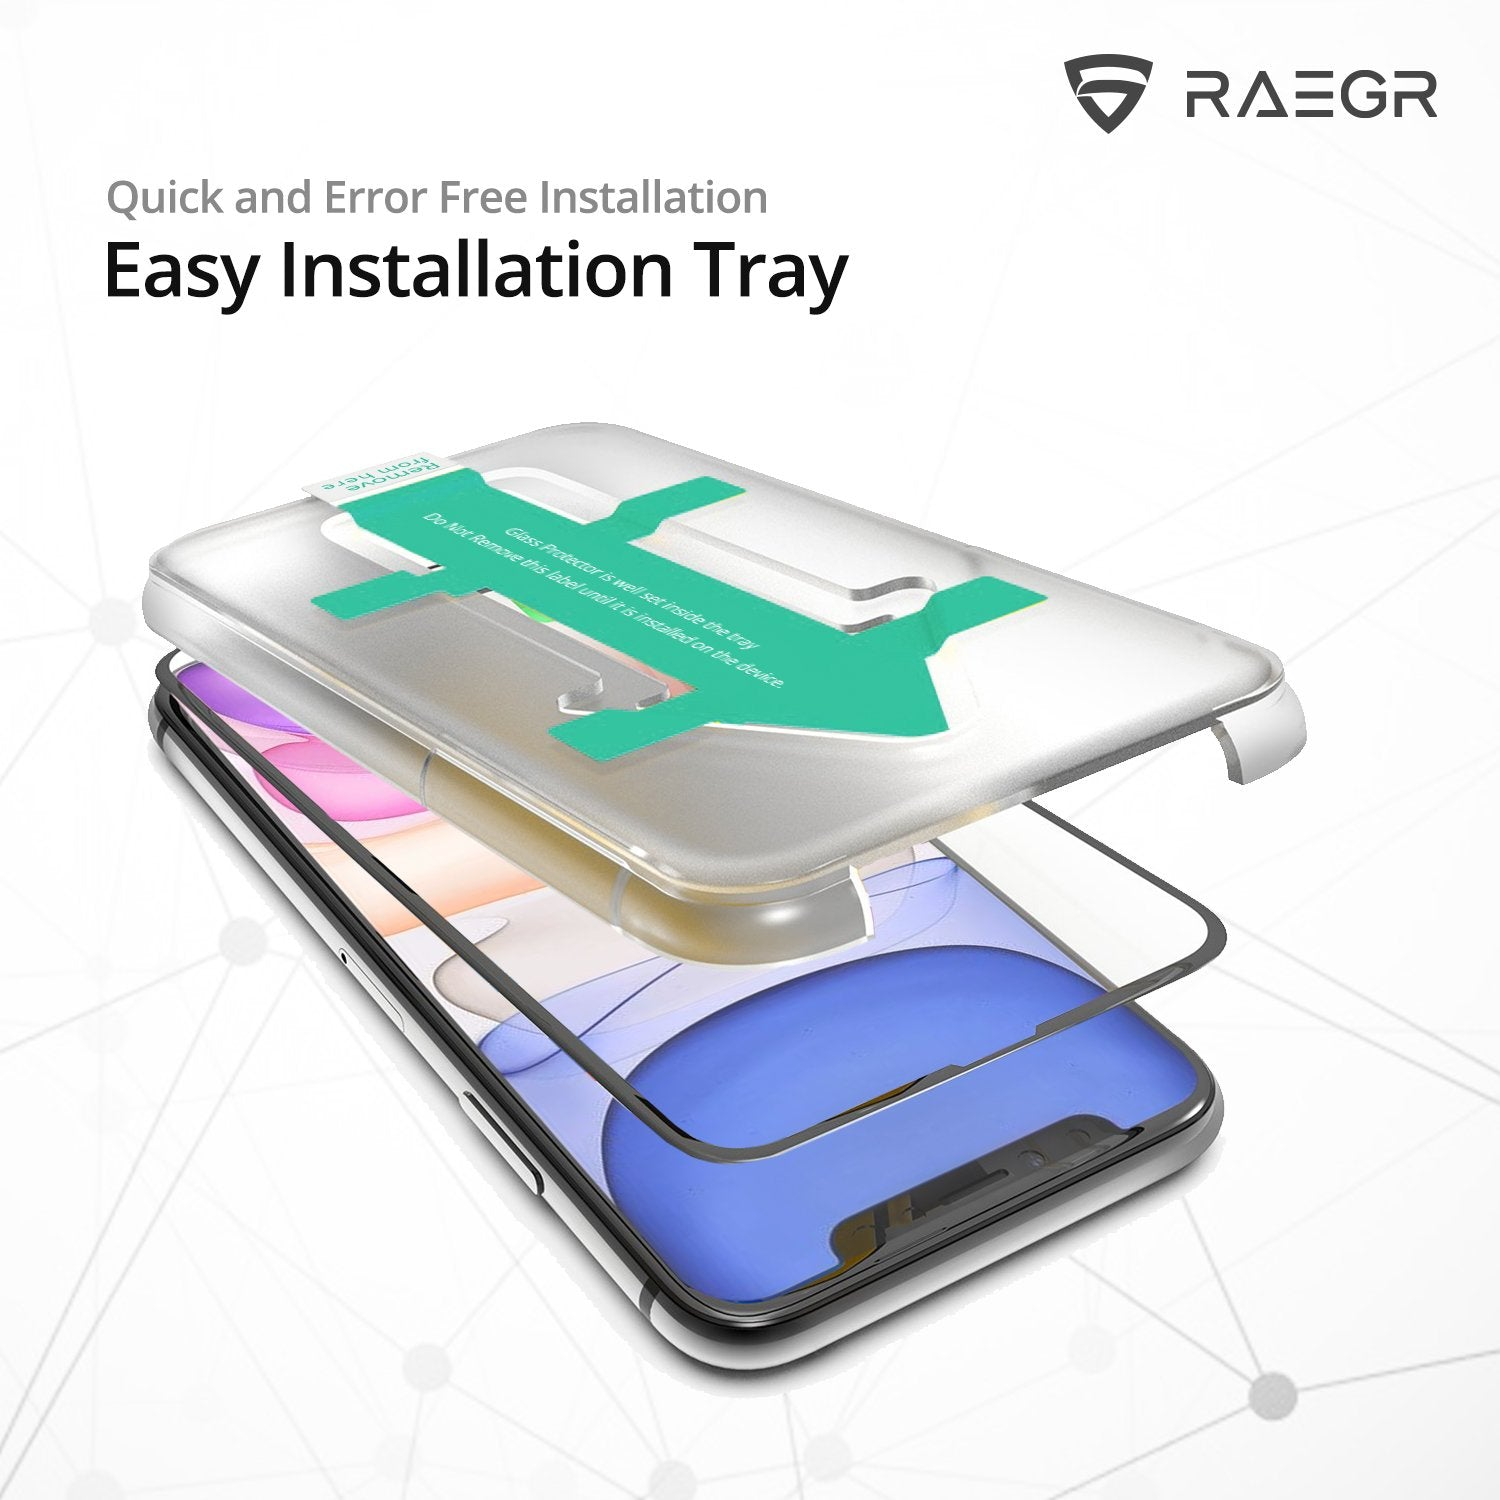 RAEGR EZ Fix 3D Glas HD iPhone 11 Pro Full Cover Tempered Glass